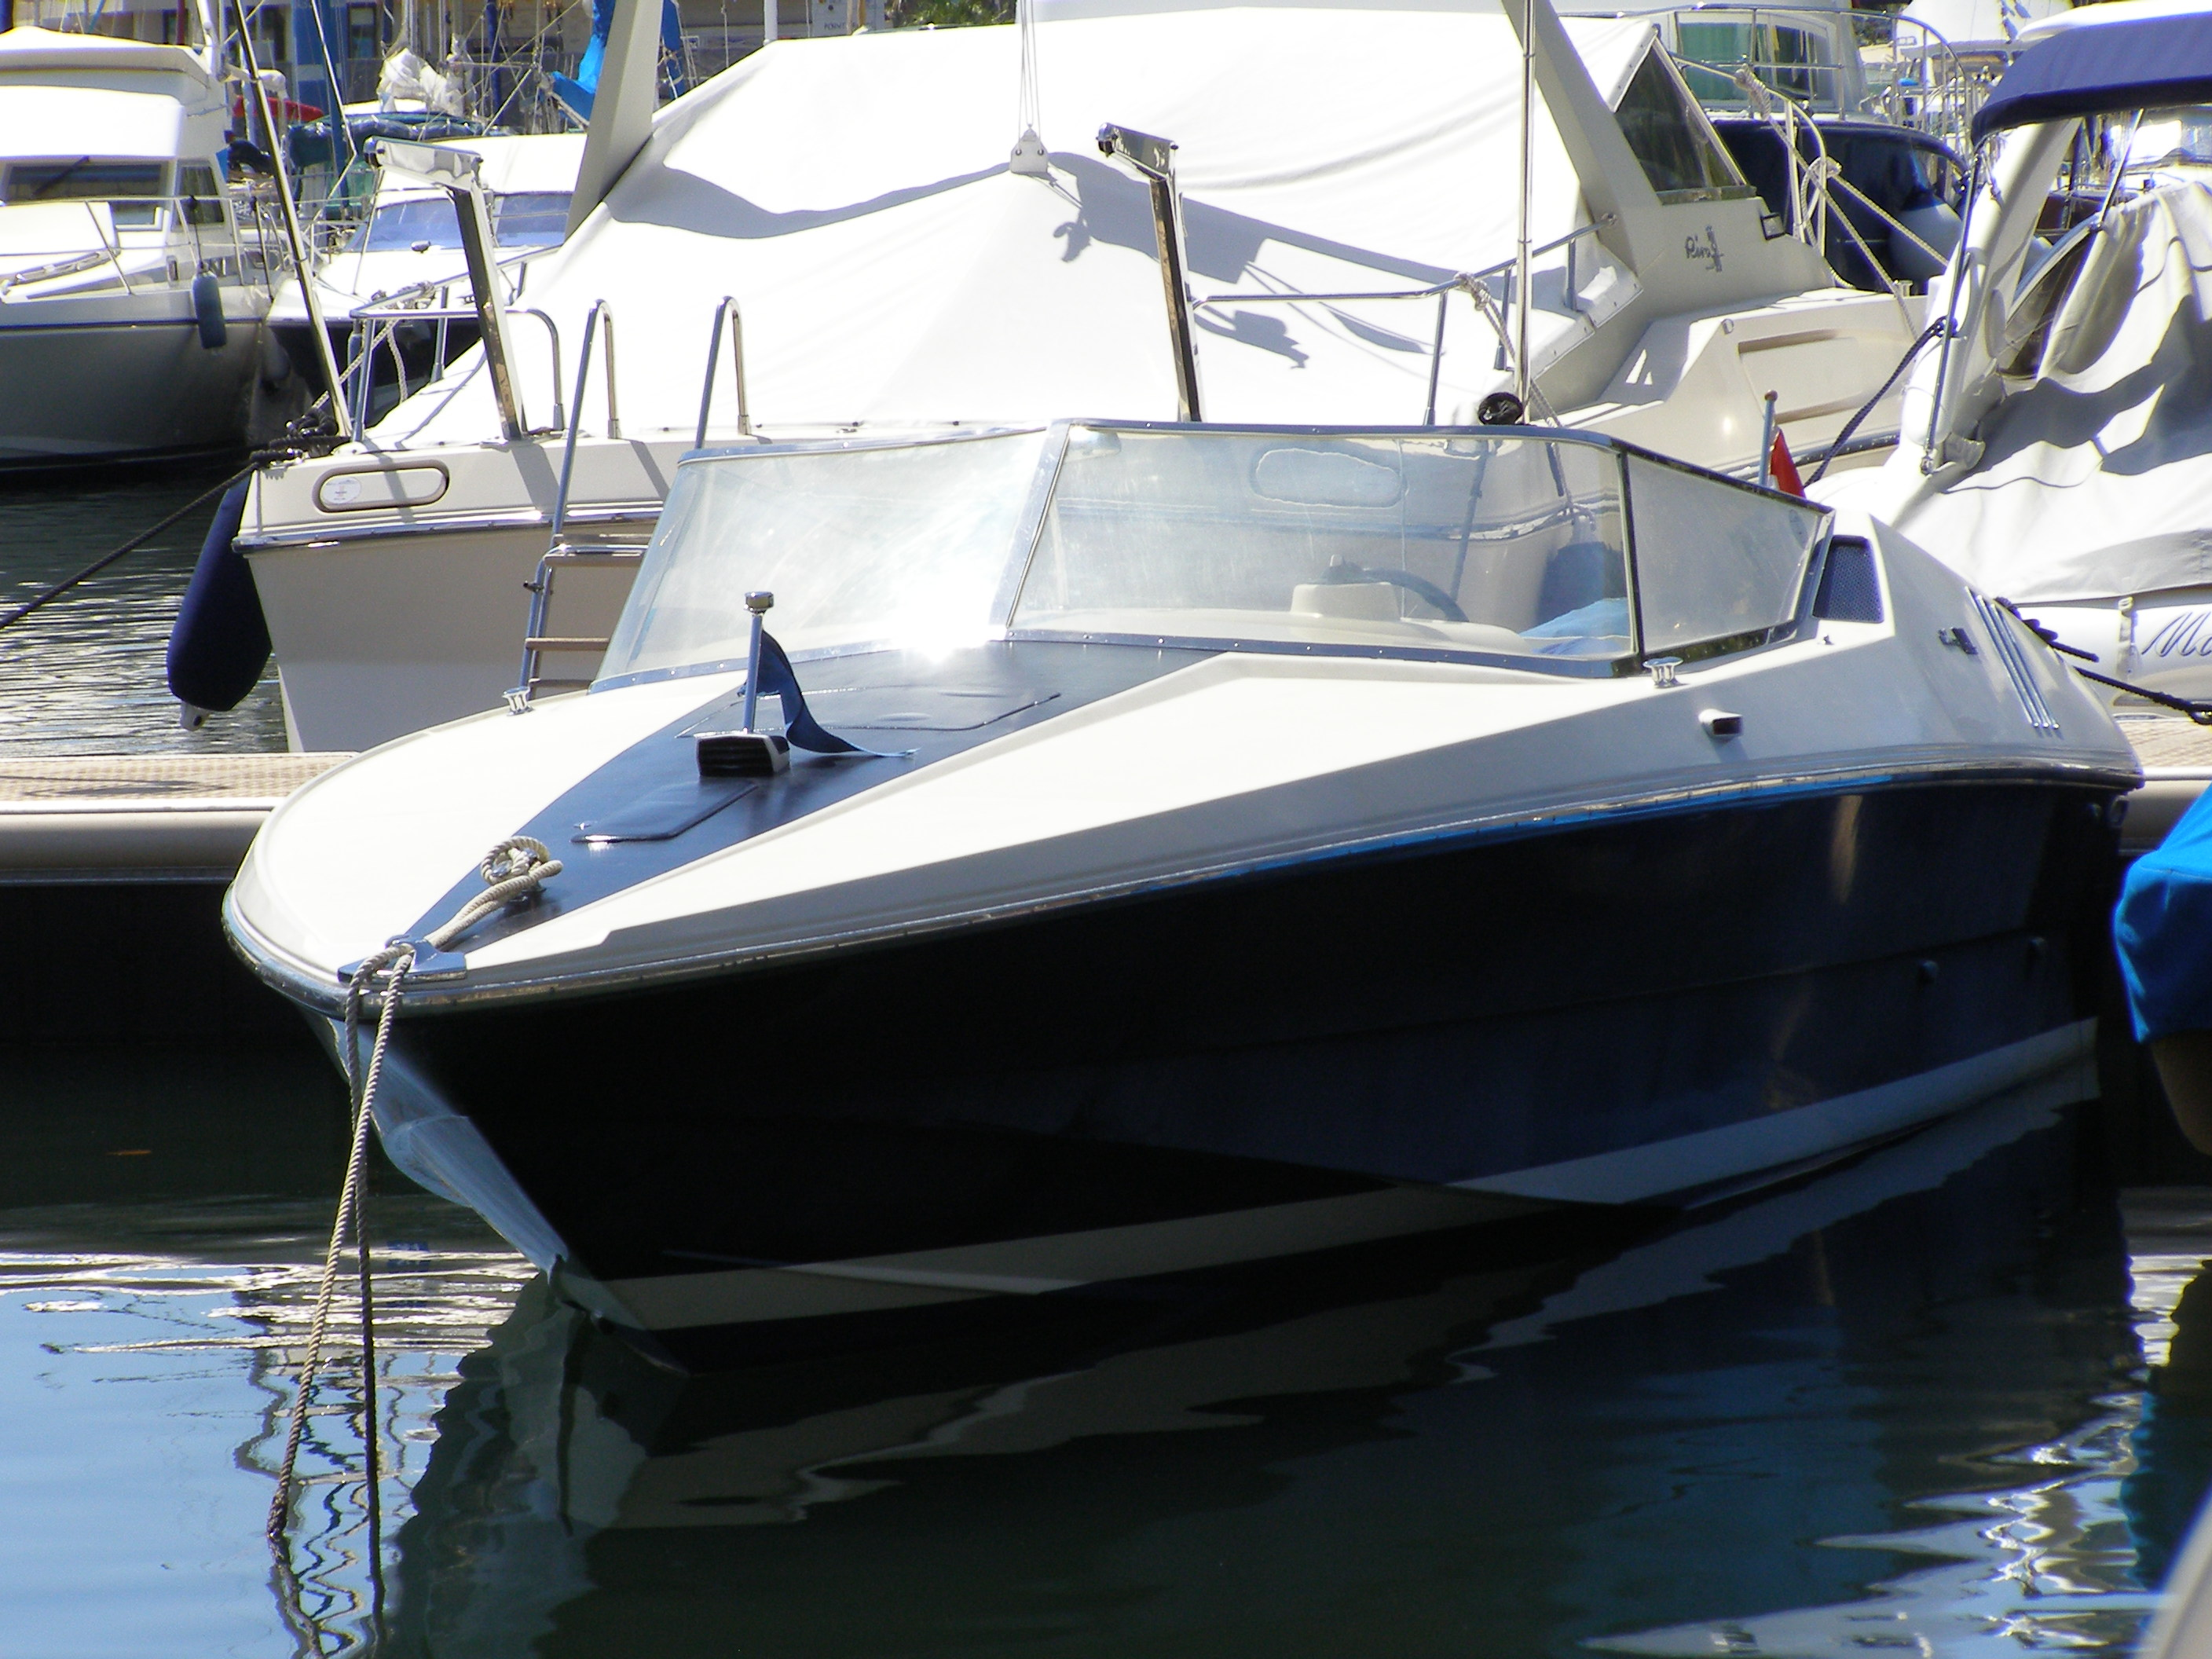 This Boat has now been Sold. click here for other Riva boats for sale